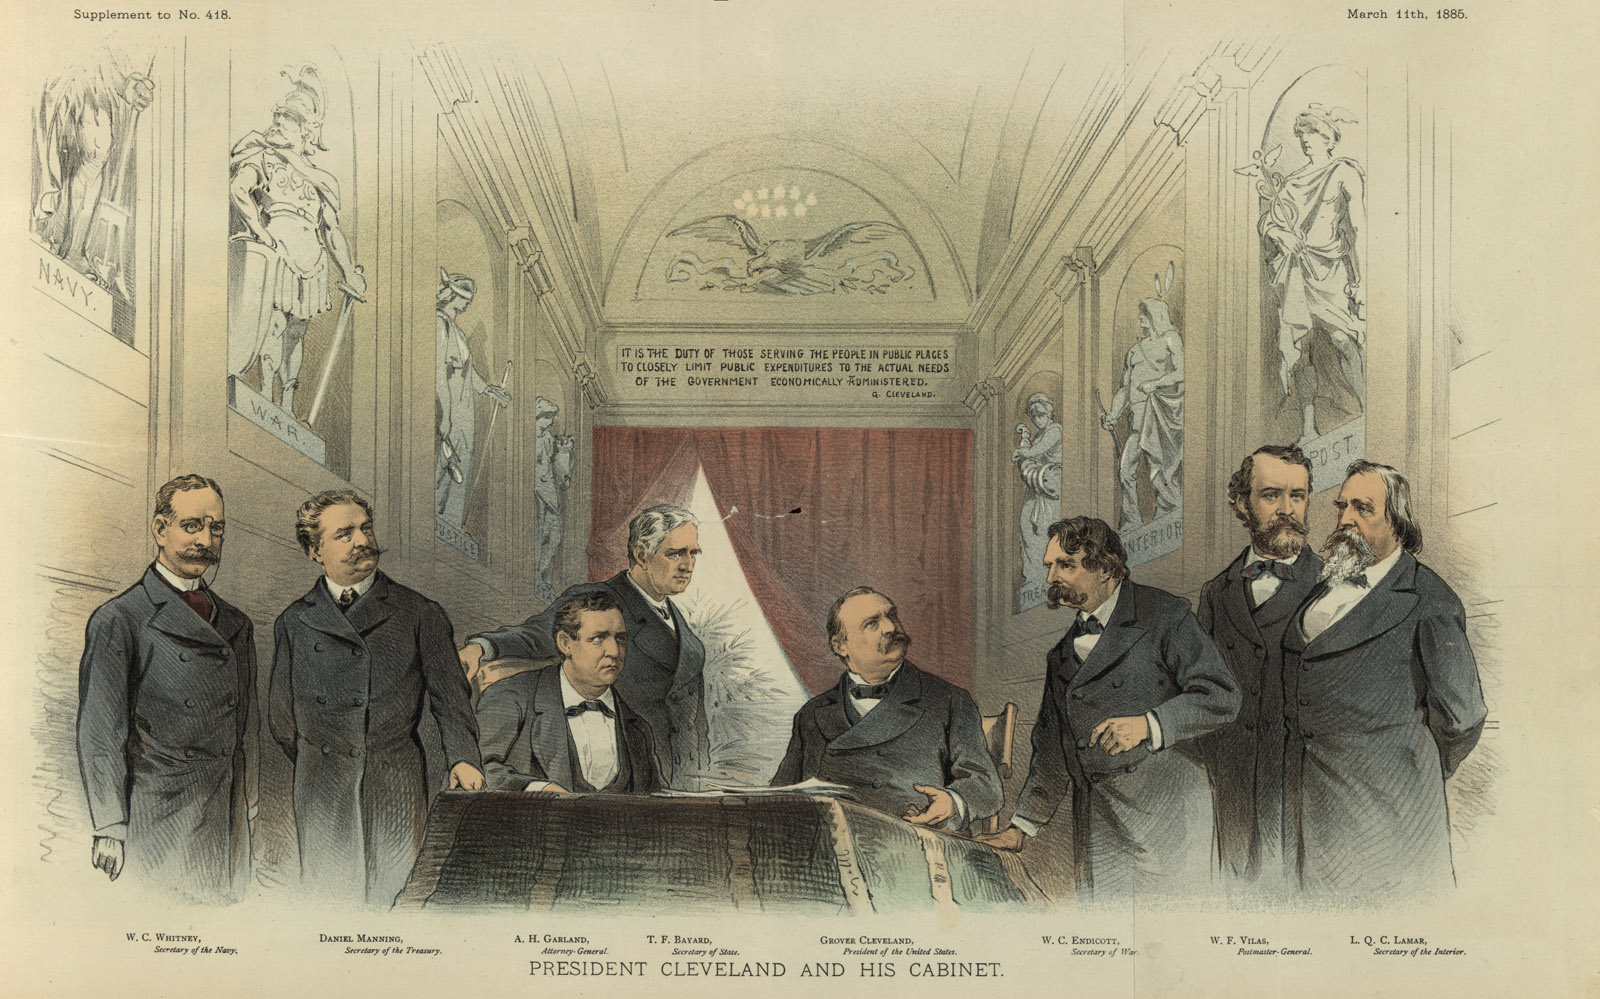 Illustration by Joseph Ferdinand Keppler showing President Cleveland sitting at a desk between his cabinet members, with Secretary of the Navy W.C. Whitney on the left (Library of Congress, Prints & Photographs Division, [LC-DIG-ppmsca-28178])